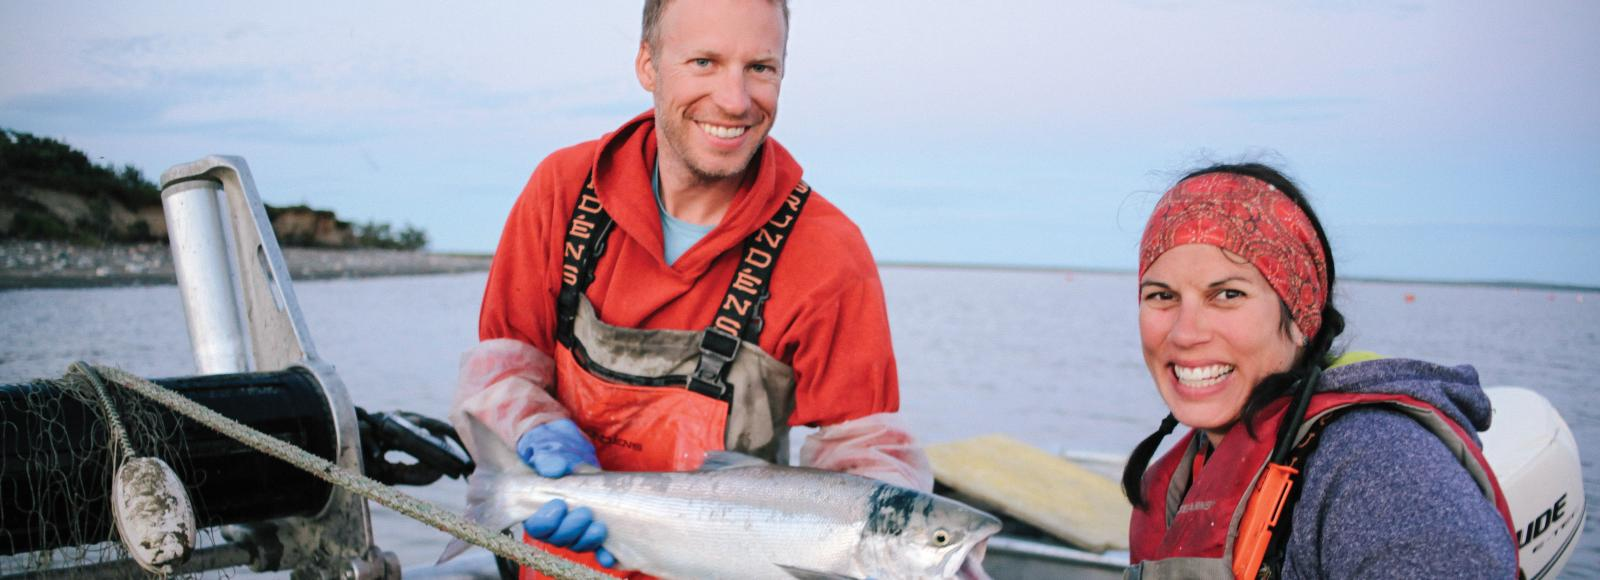 Smiling man and woman in boat wearing orange waterproof overalls, holding a silver salmon